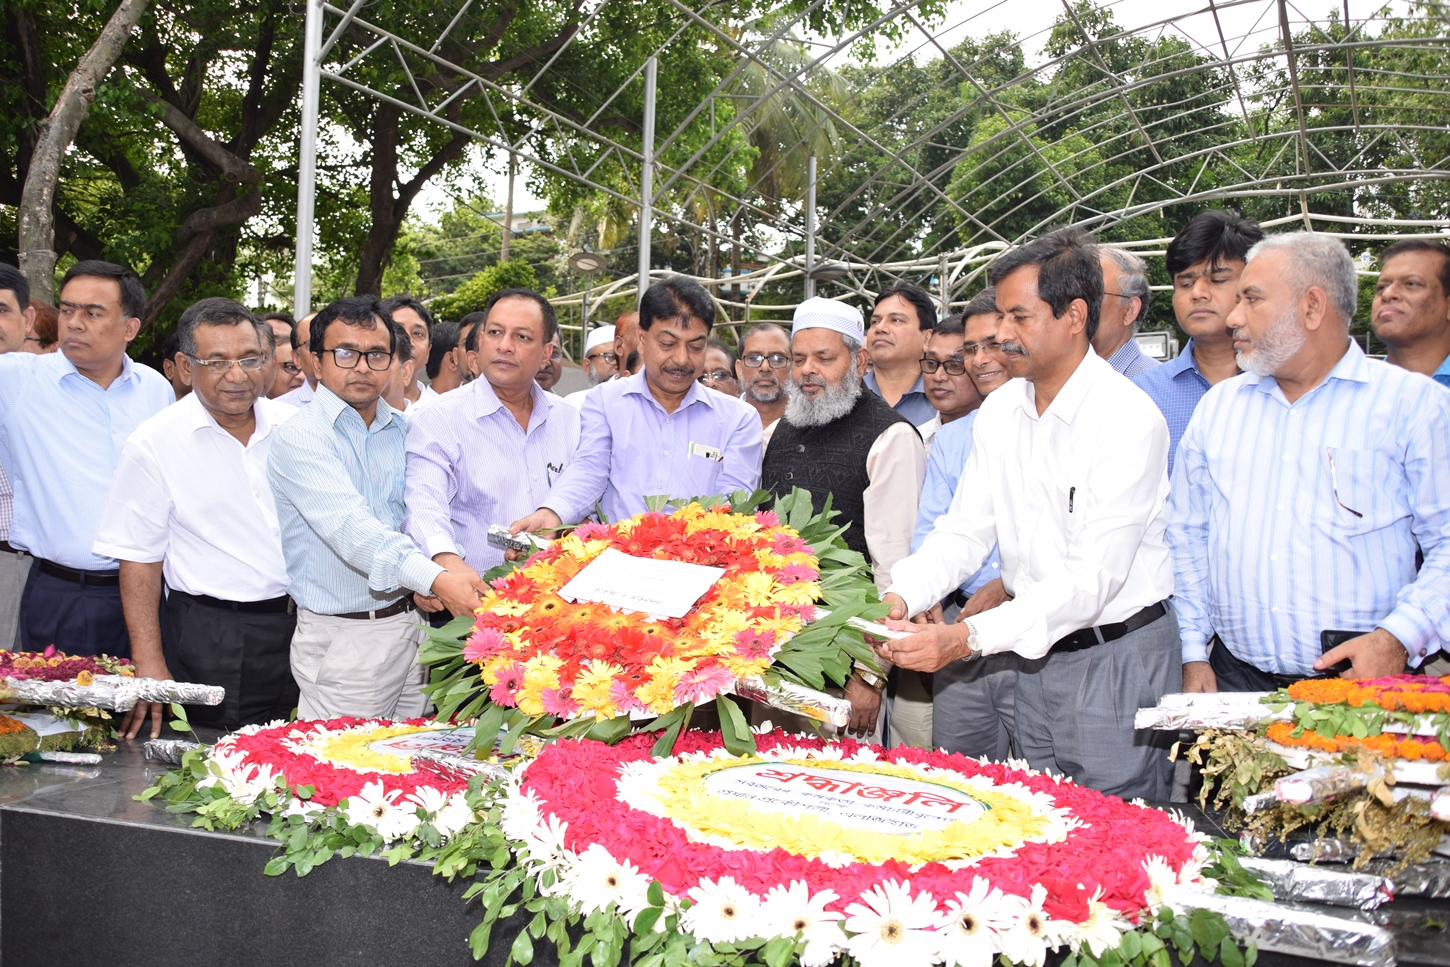 Newly appointed Chief Engineer of LGED Mr. Md. Khalilur Rahman placing floral wreaths at the portrait of Bangabandhu Sheikh Mujibur Rahman at Dhanmondi Road-32 on 9 May, 2019.